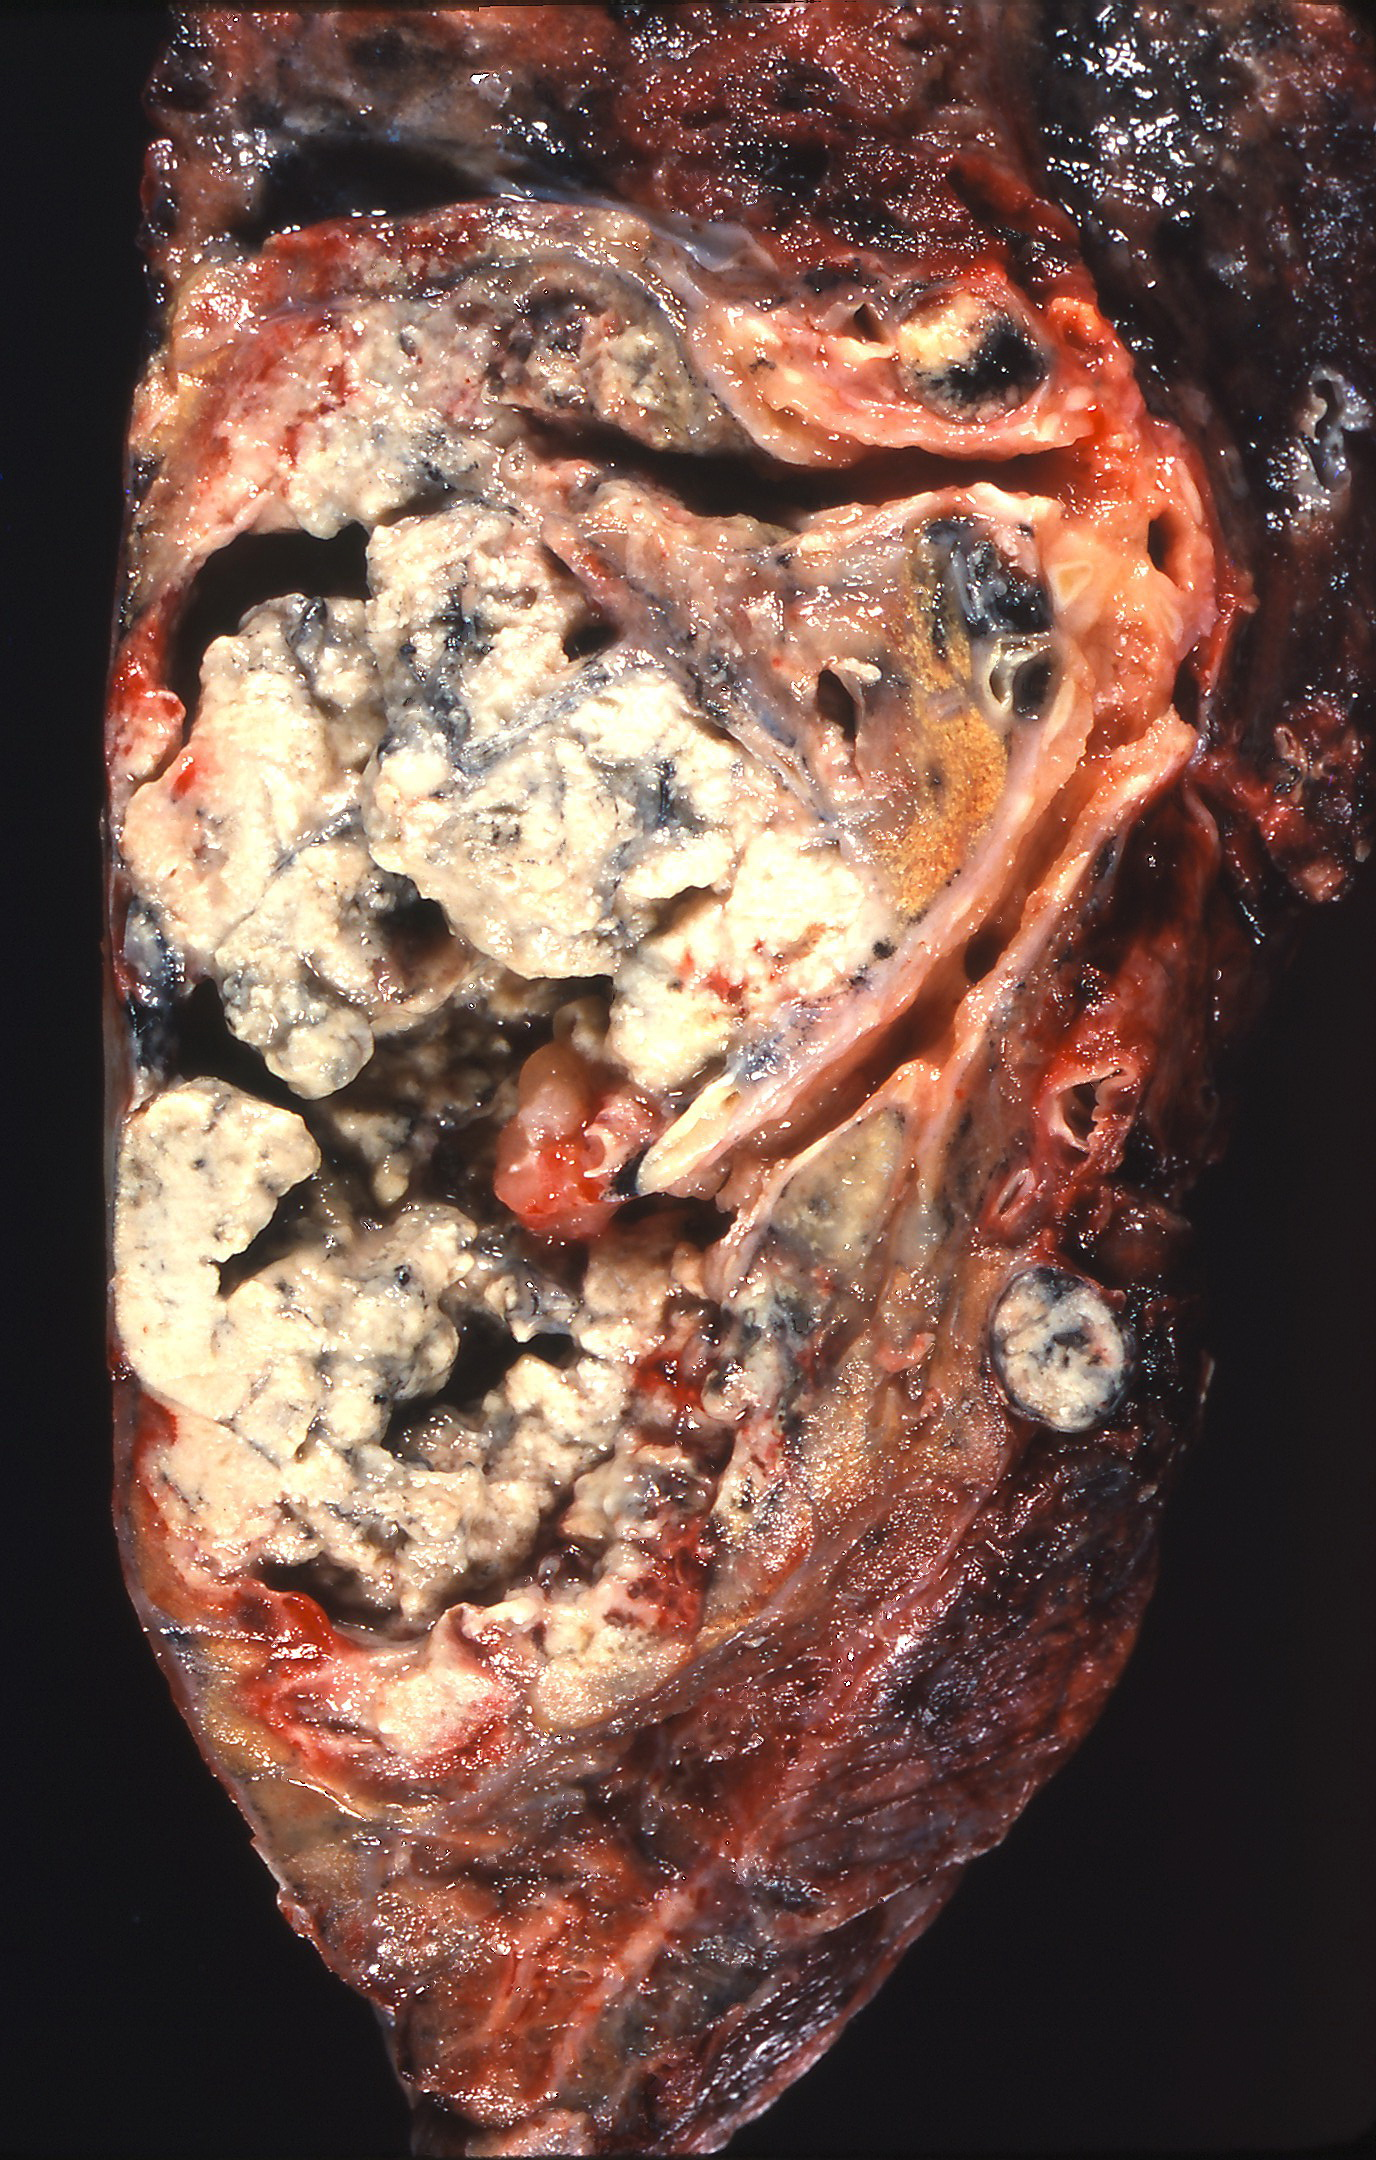 Squamous Cell Carcinoma Stage 4 Lung Cancer